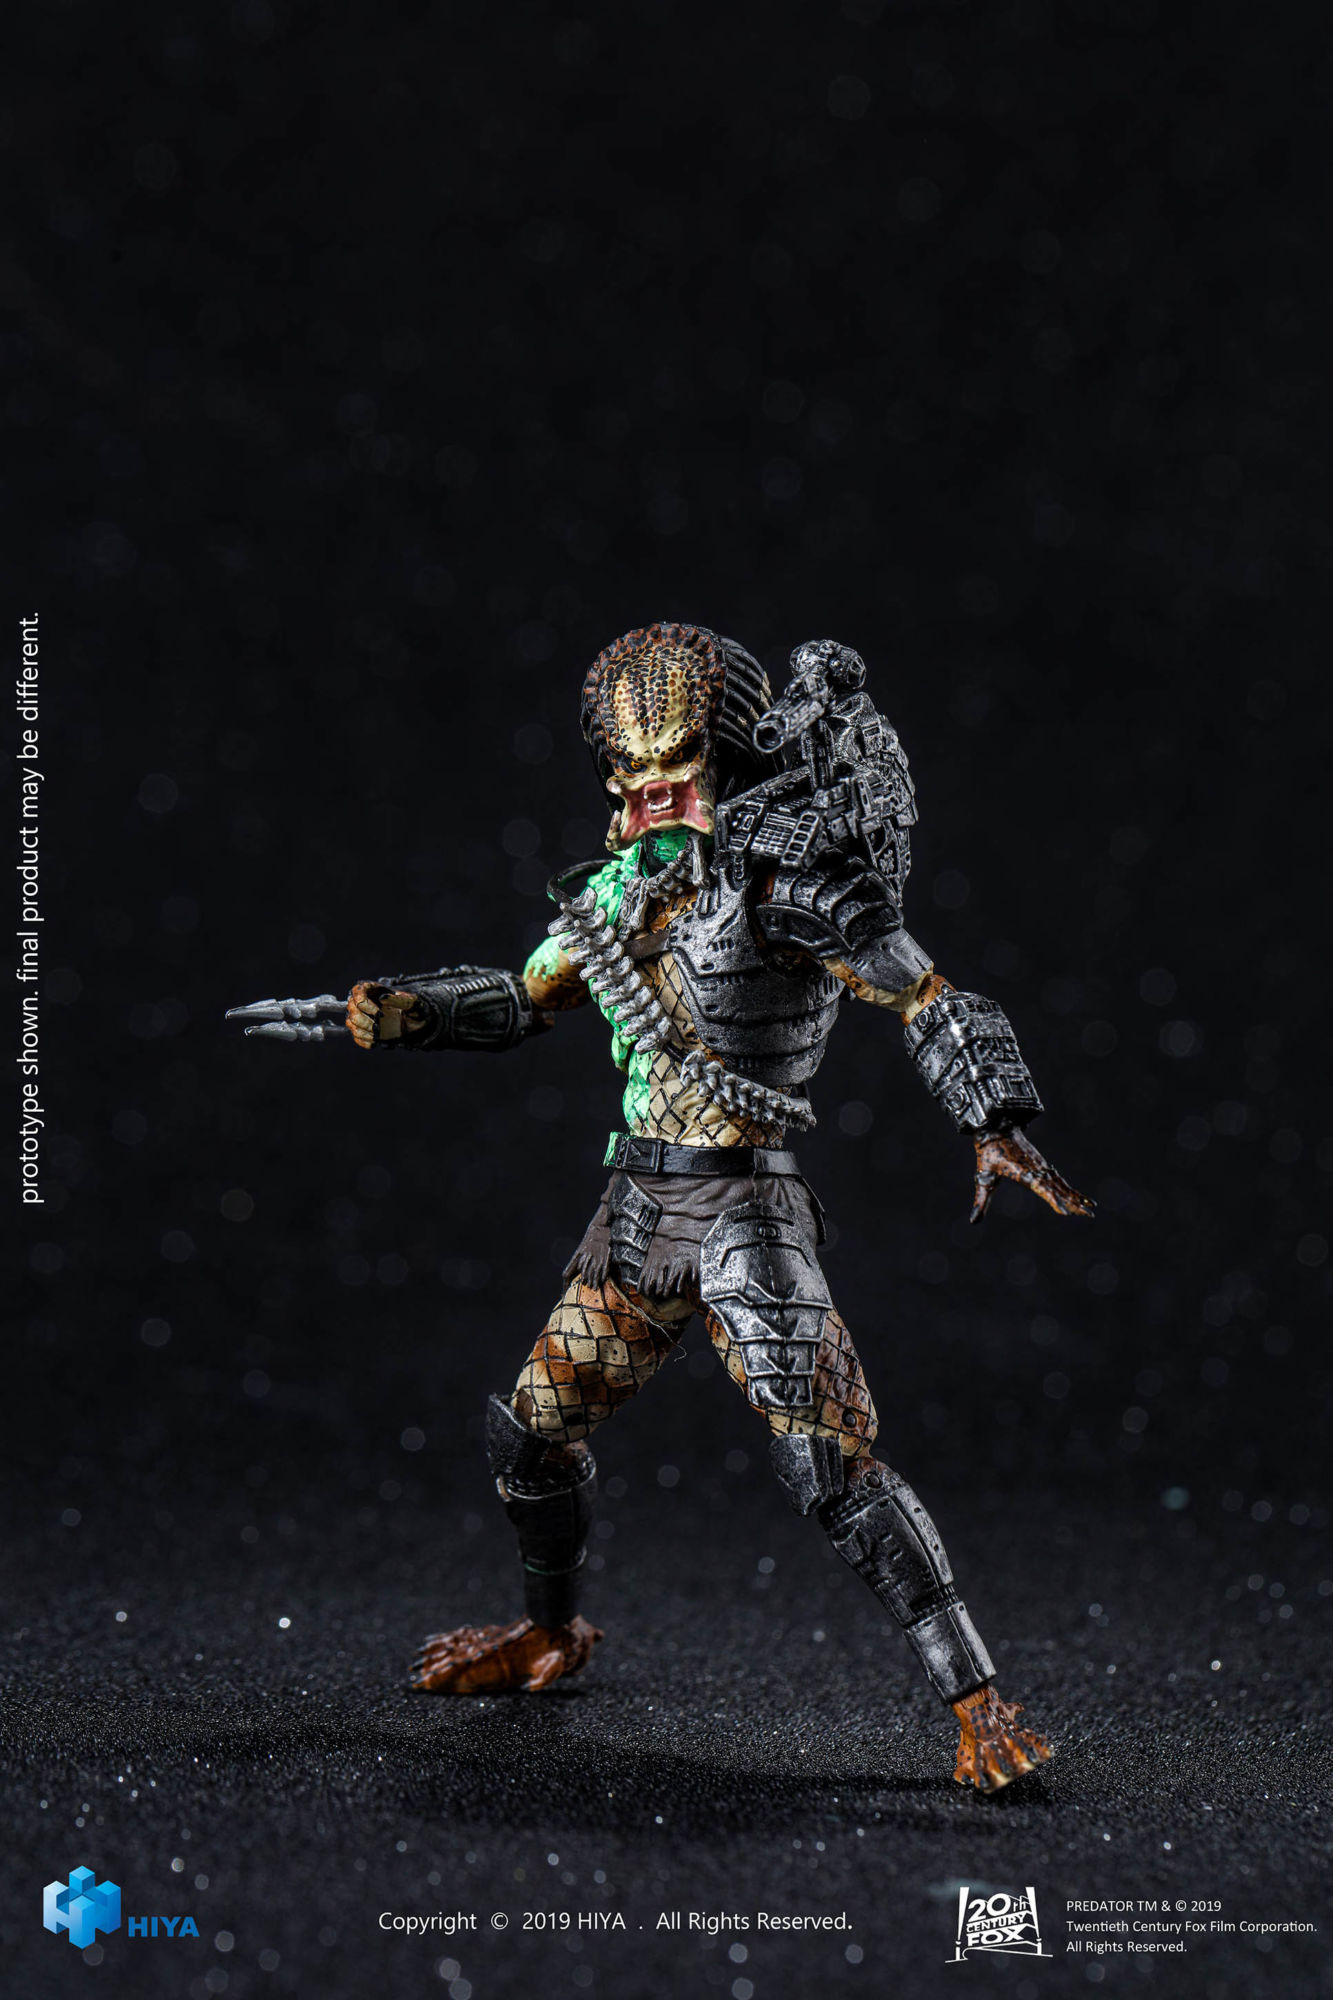 Predator Goes for the Kill with Two New Figures from Hiya Toys